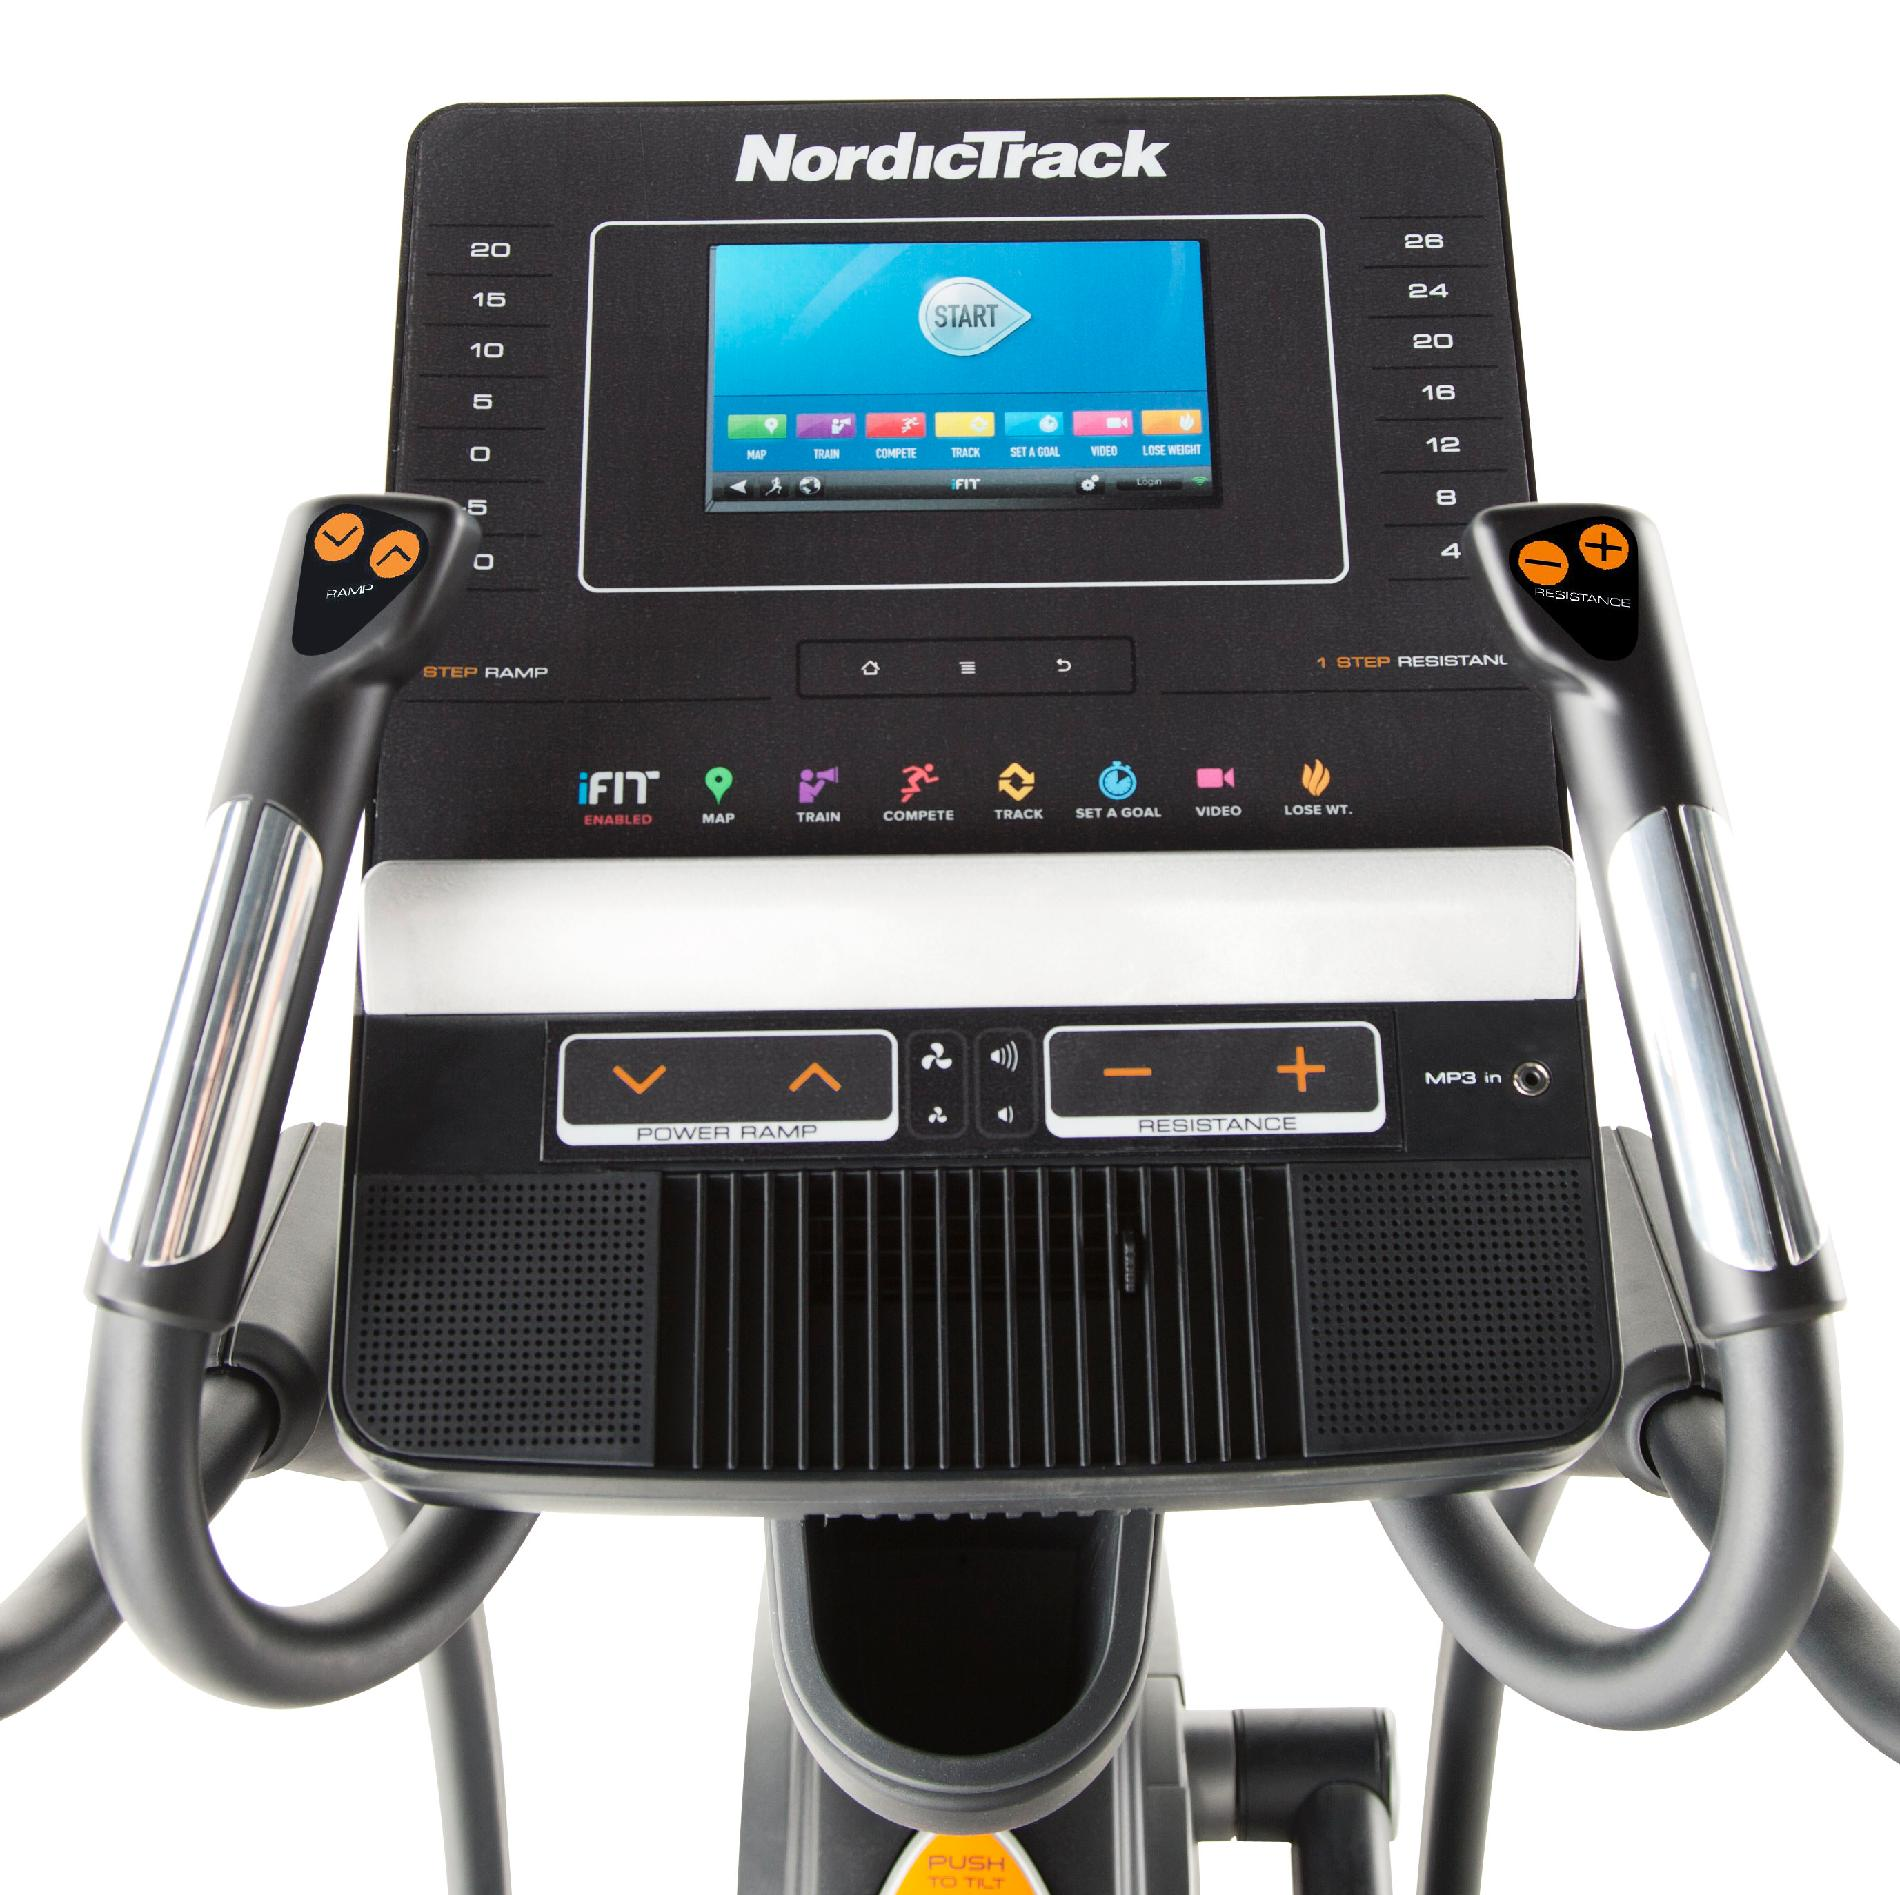 NordicTrack Elite 12.7 Adjustable StrideElliptical Trainer